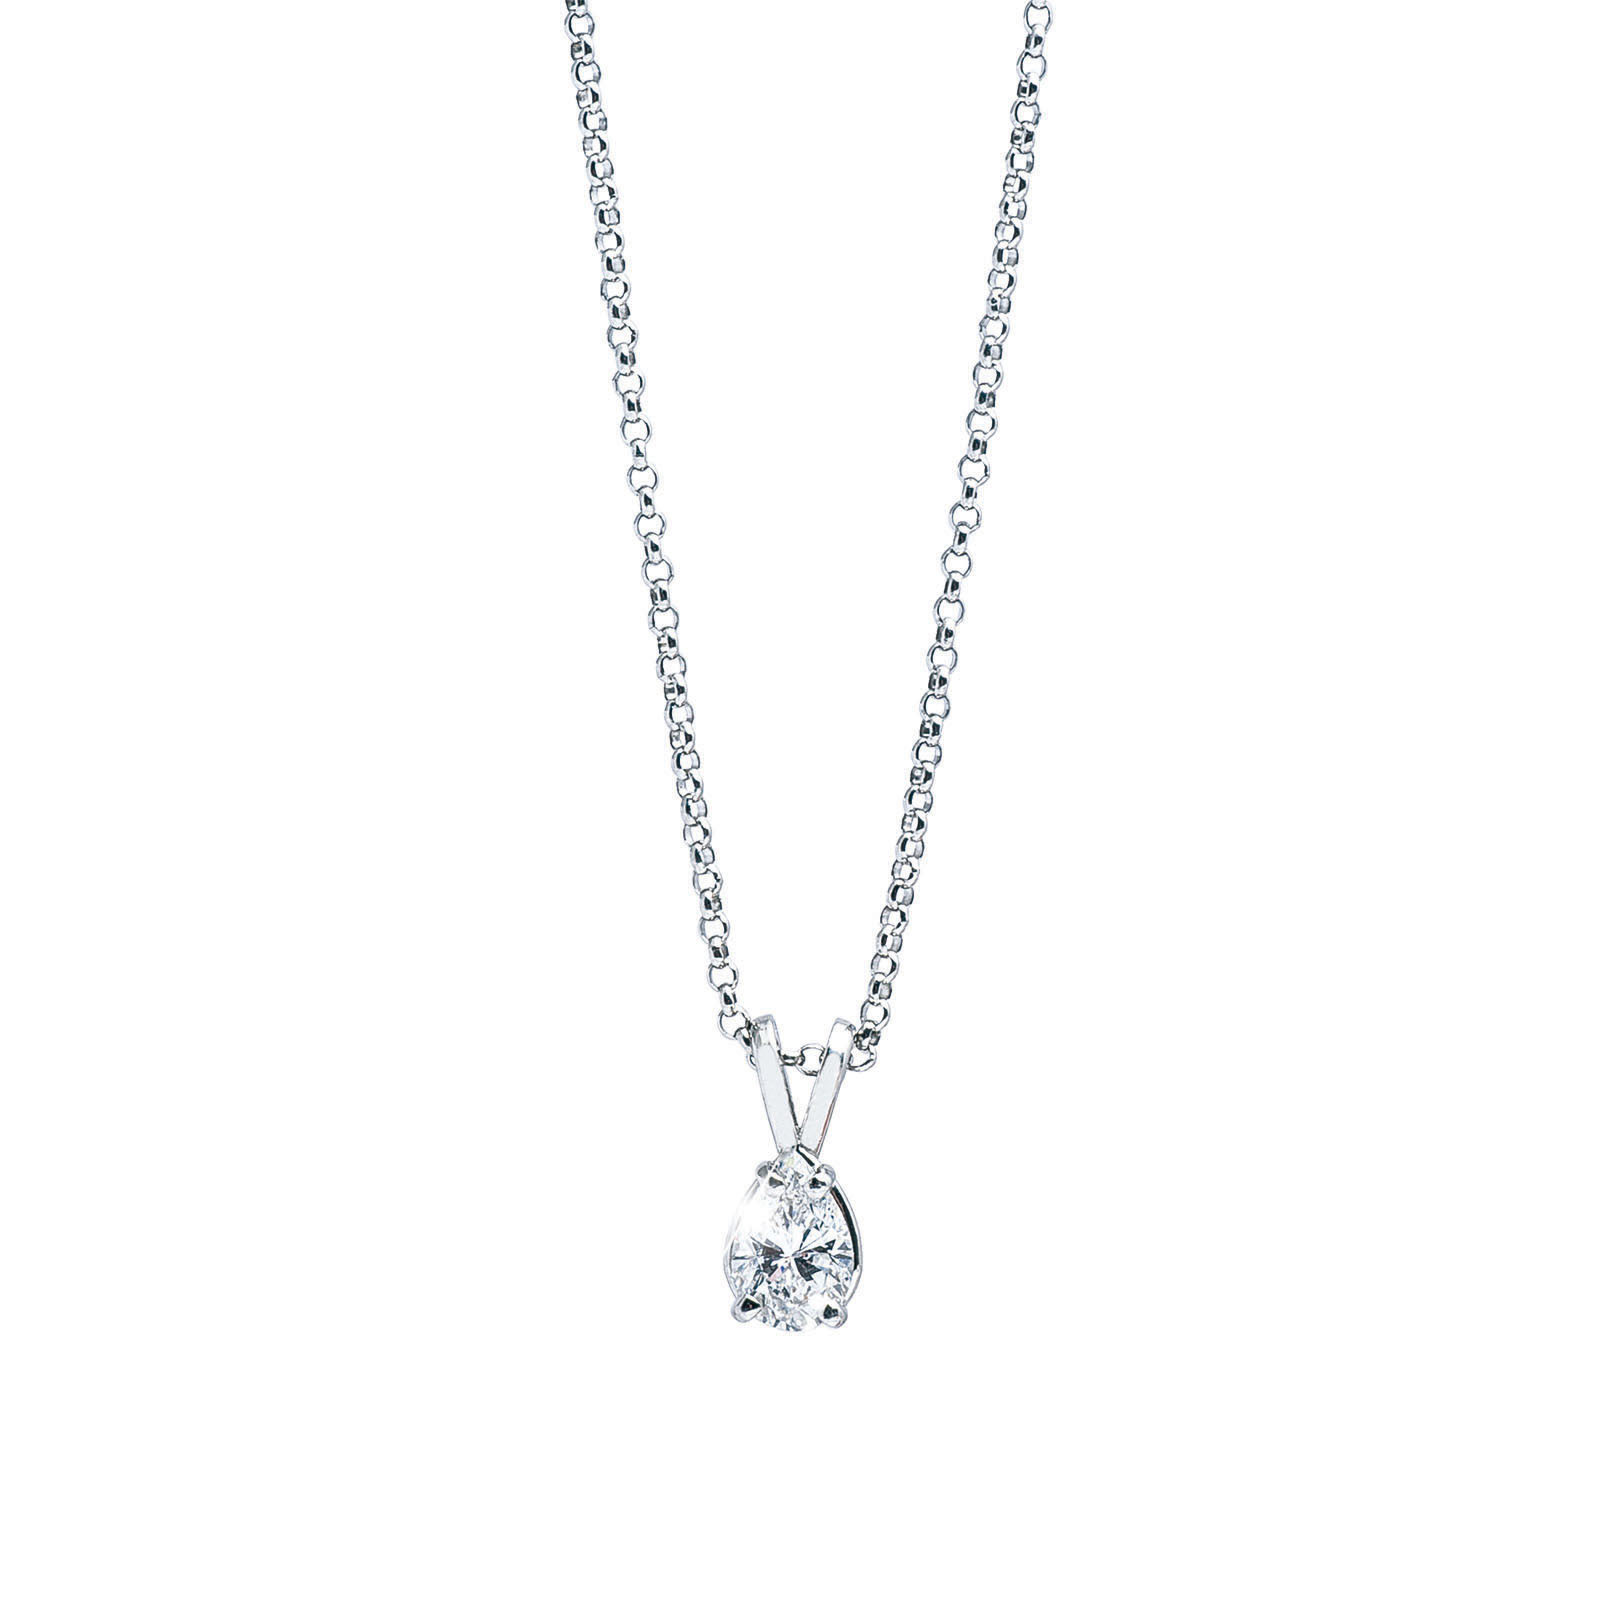 Vintage 0.57 CT Diamond Necklace